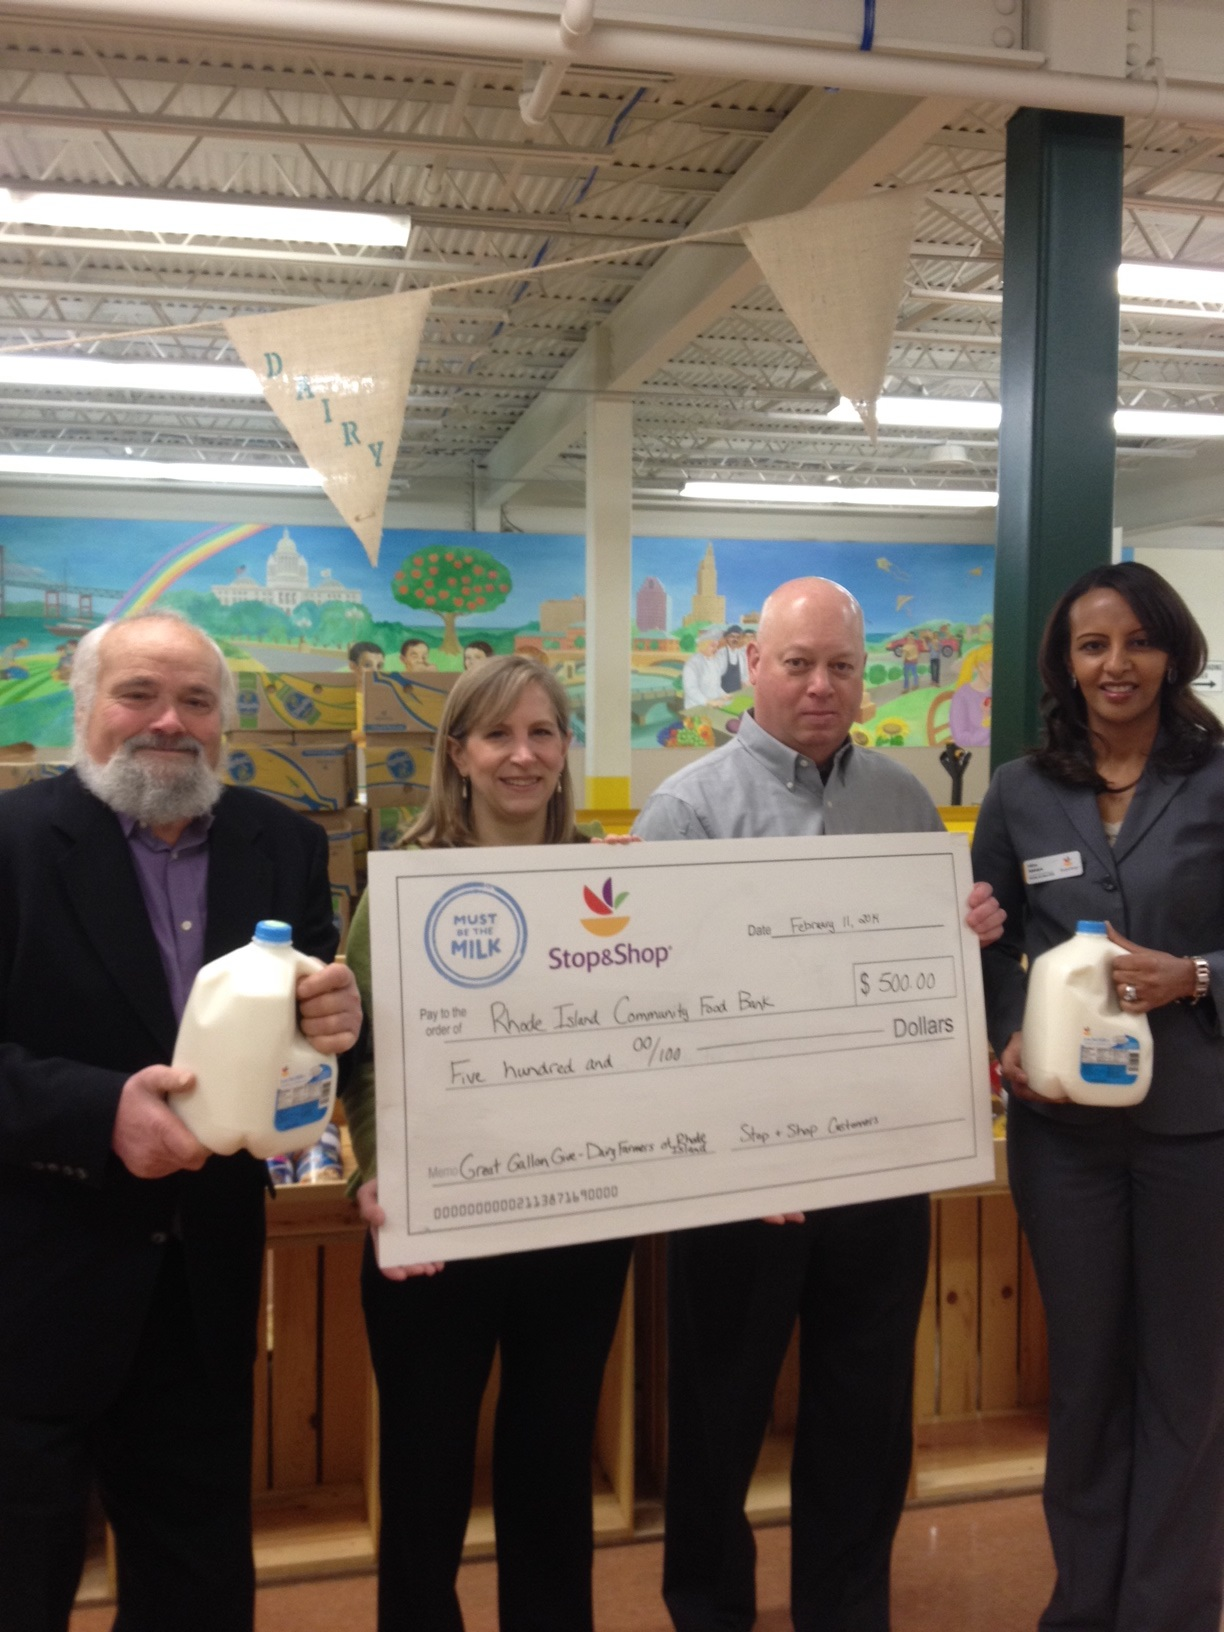 Dairy Farmer Louis Escobar of Escobar's Highland Farm, Rhode Island Community Food Bank's Chief Philanthropy Officer Lisa Roth Blackman and Director of Procurement Bruce Zarembka, and Stop & Shop #722 Providence Store Manager Hilina Ajakaiye celebrate the results of the Great Gallon Give